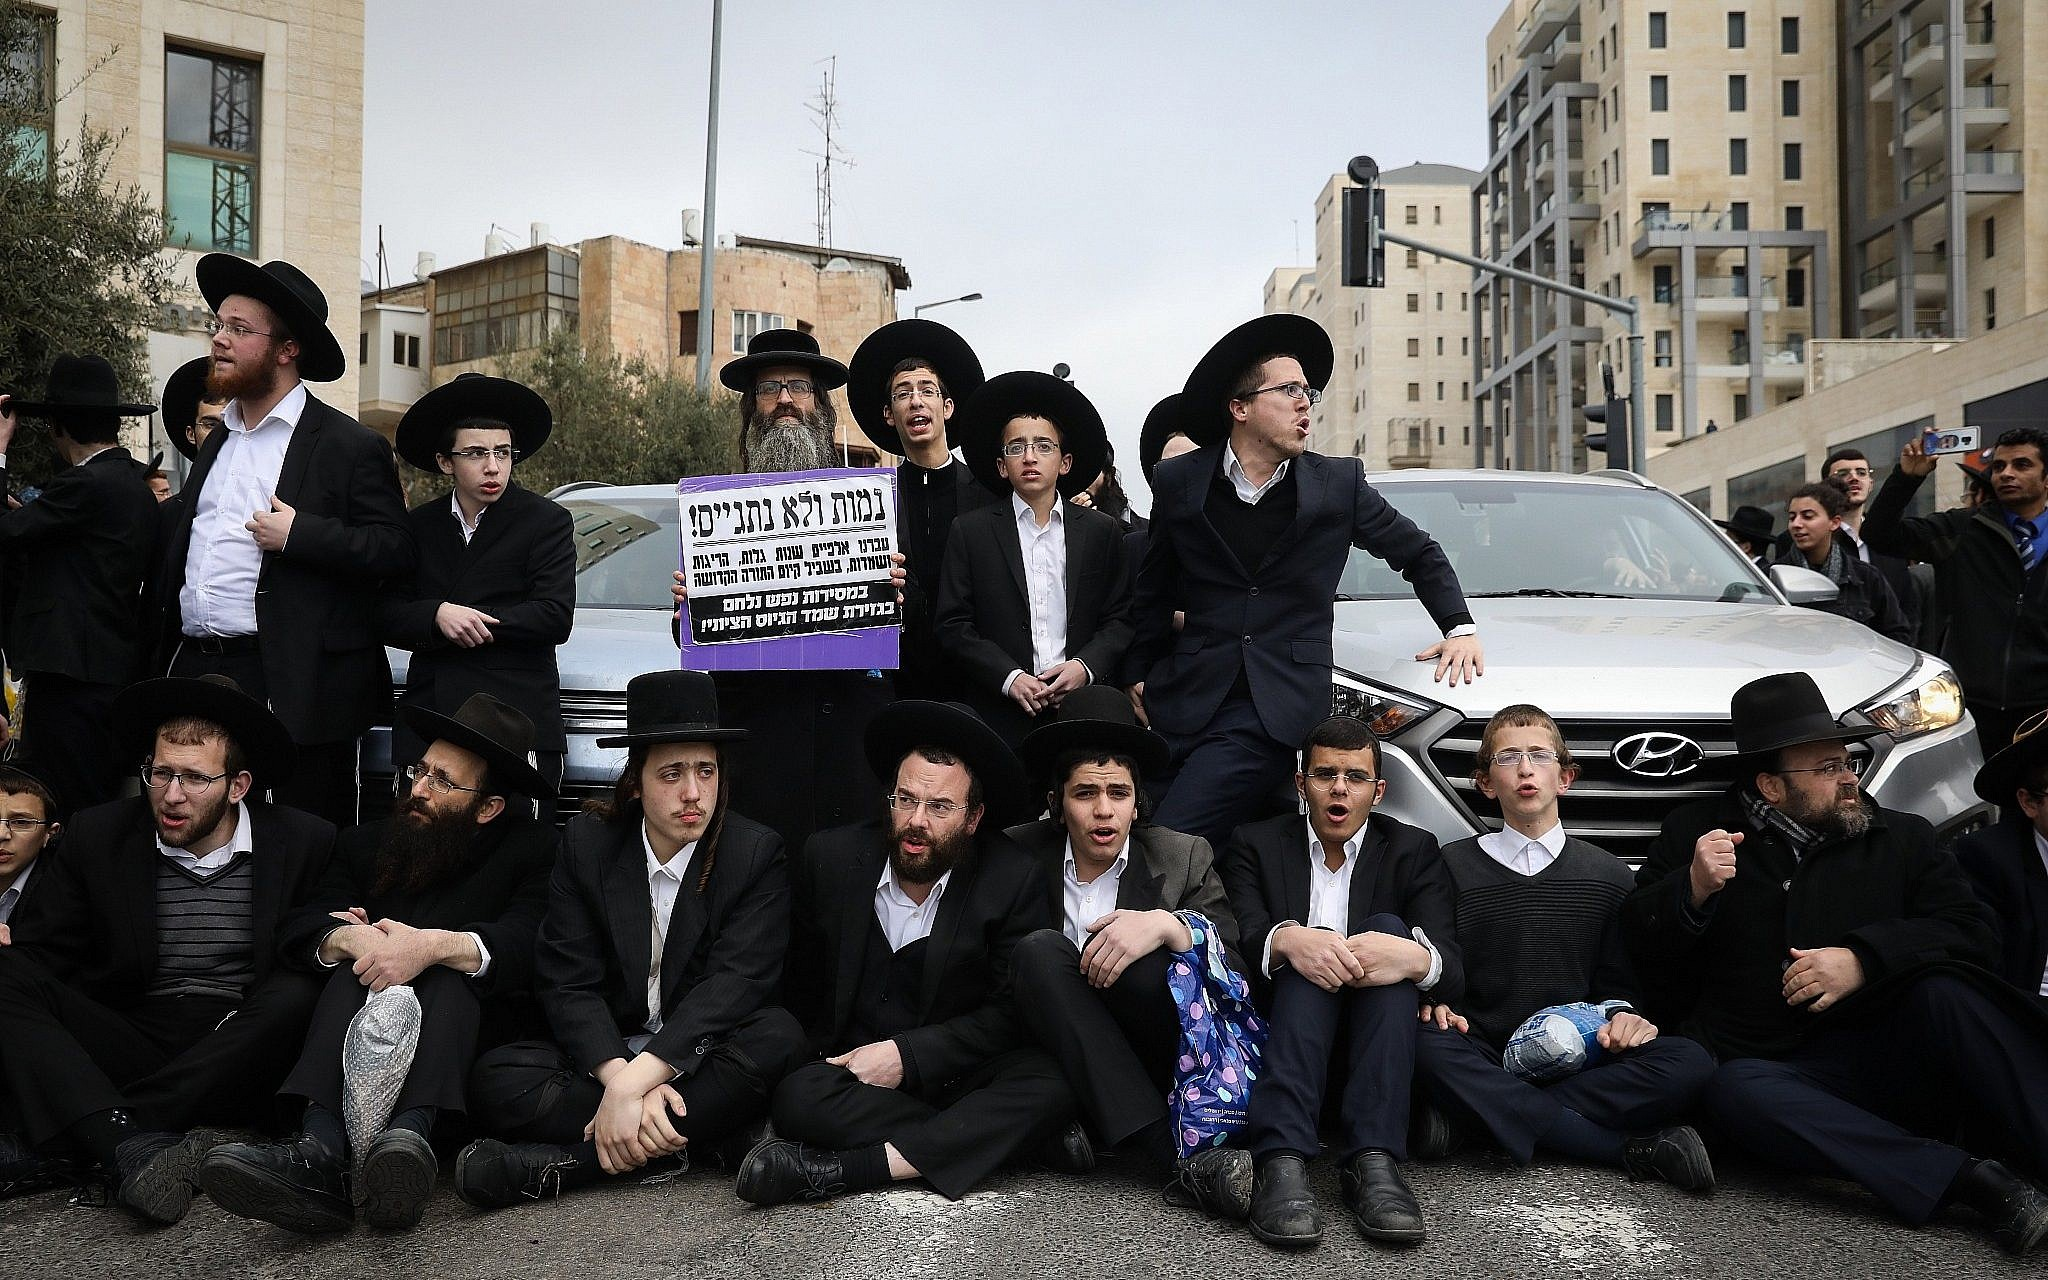 Haredi Jews In Israel: Israel's Draft Dodging Haredi, The Legal Impetus, The